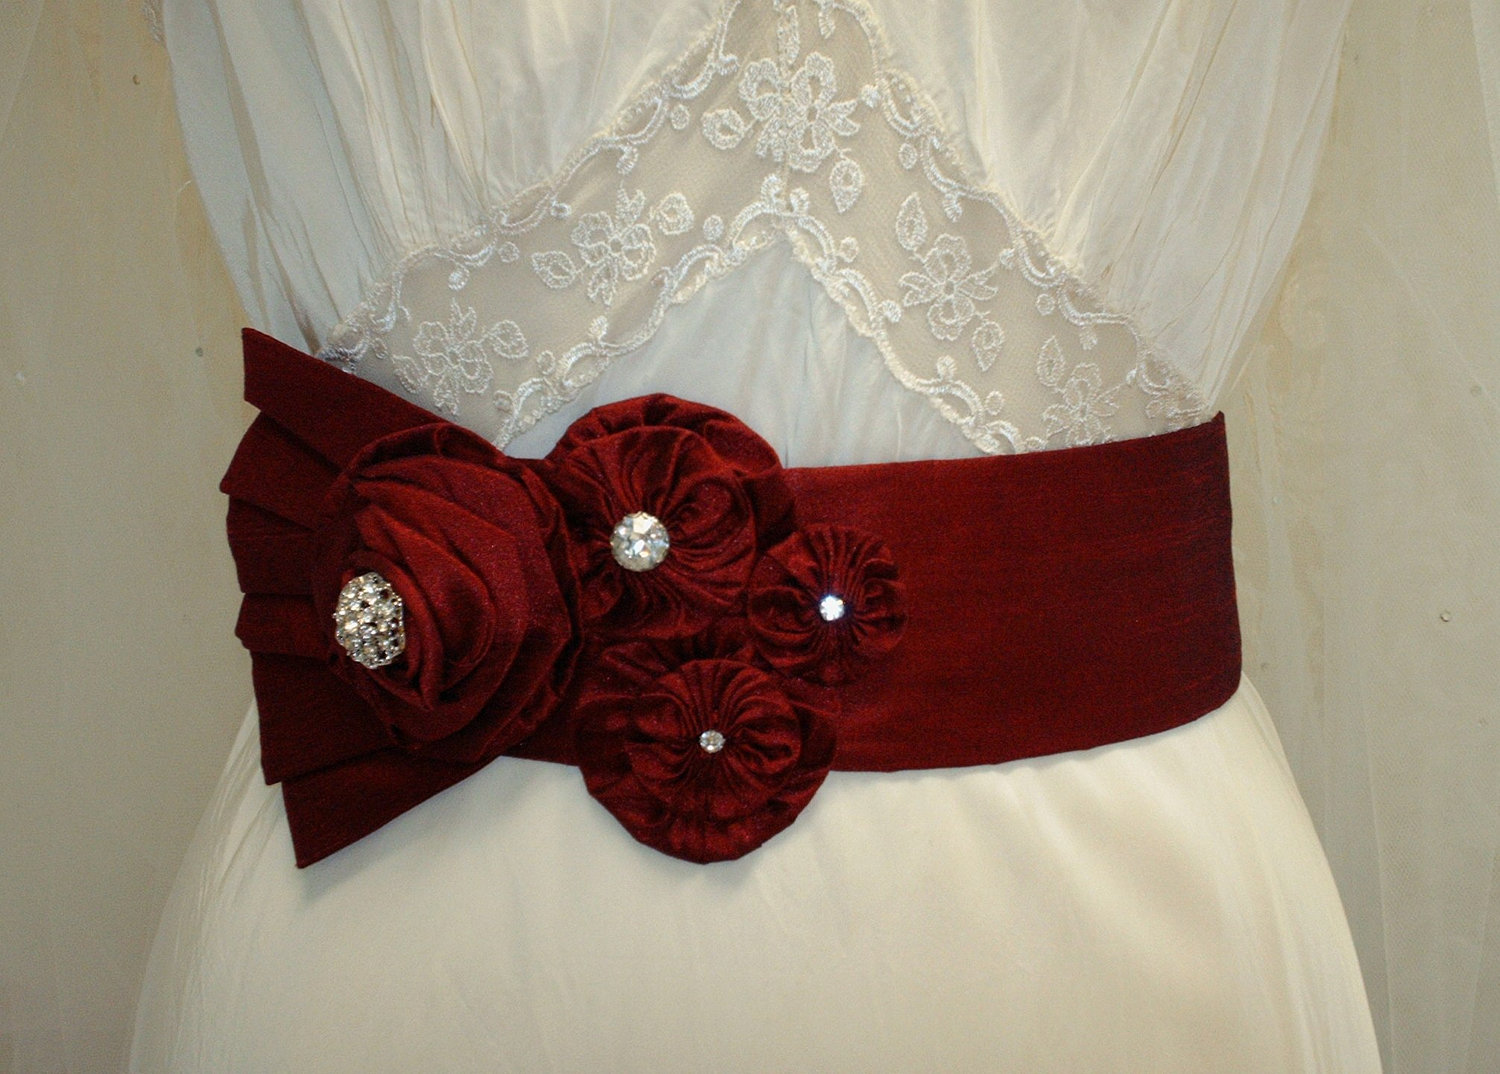 red bridal sash slash red wedding floral sash red wedding sash rhinestone sash wedding sash Red Bridal Sash Red Wedding Floral Sash Red Wedding Sash Rhinestone Sash